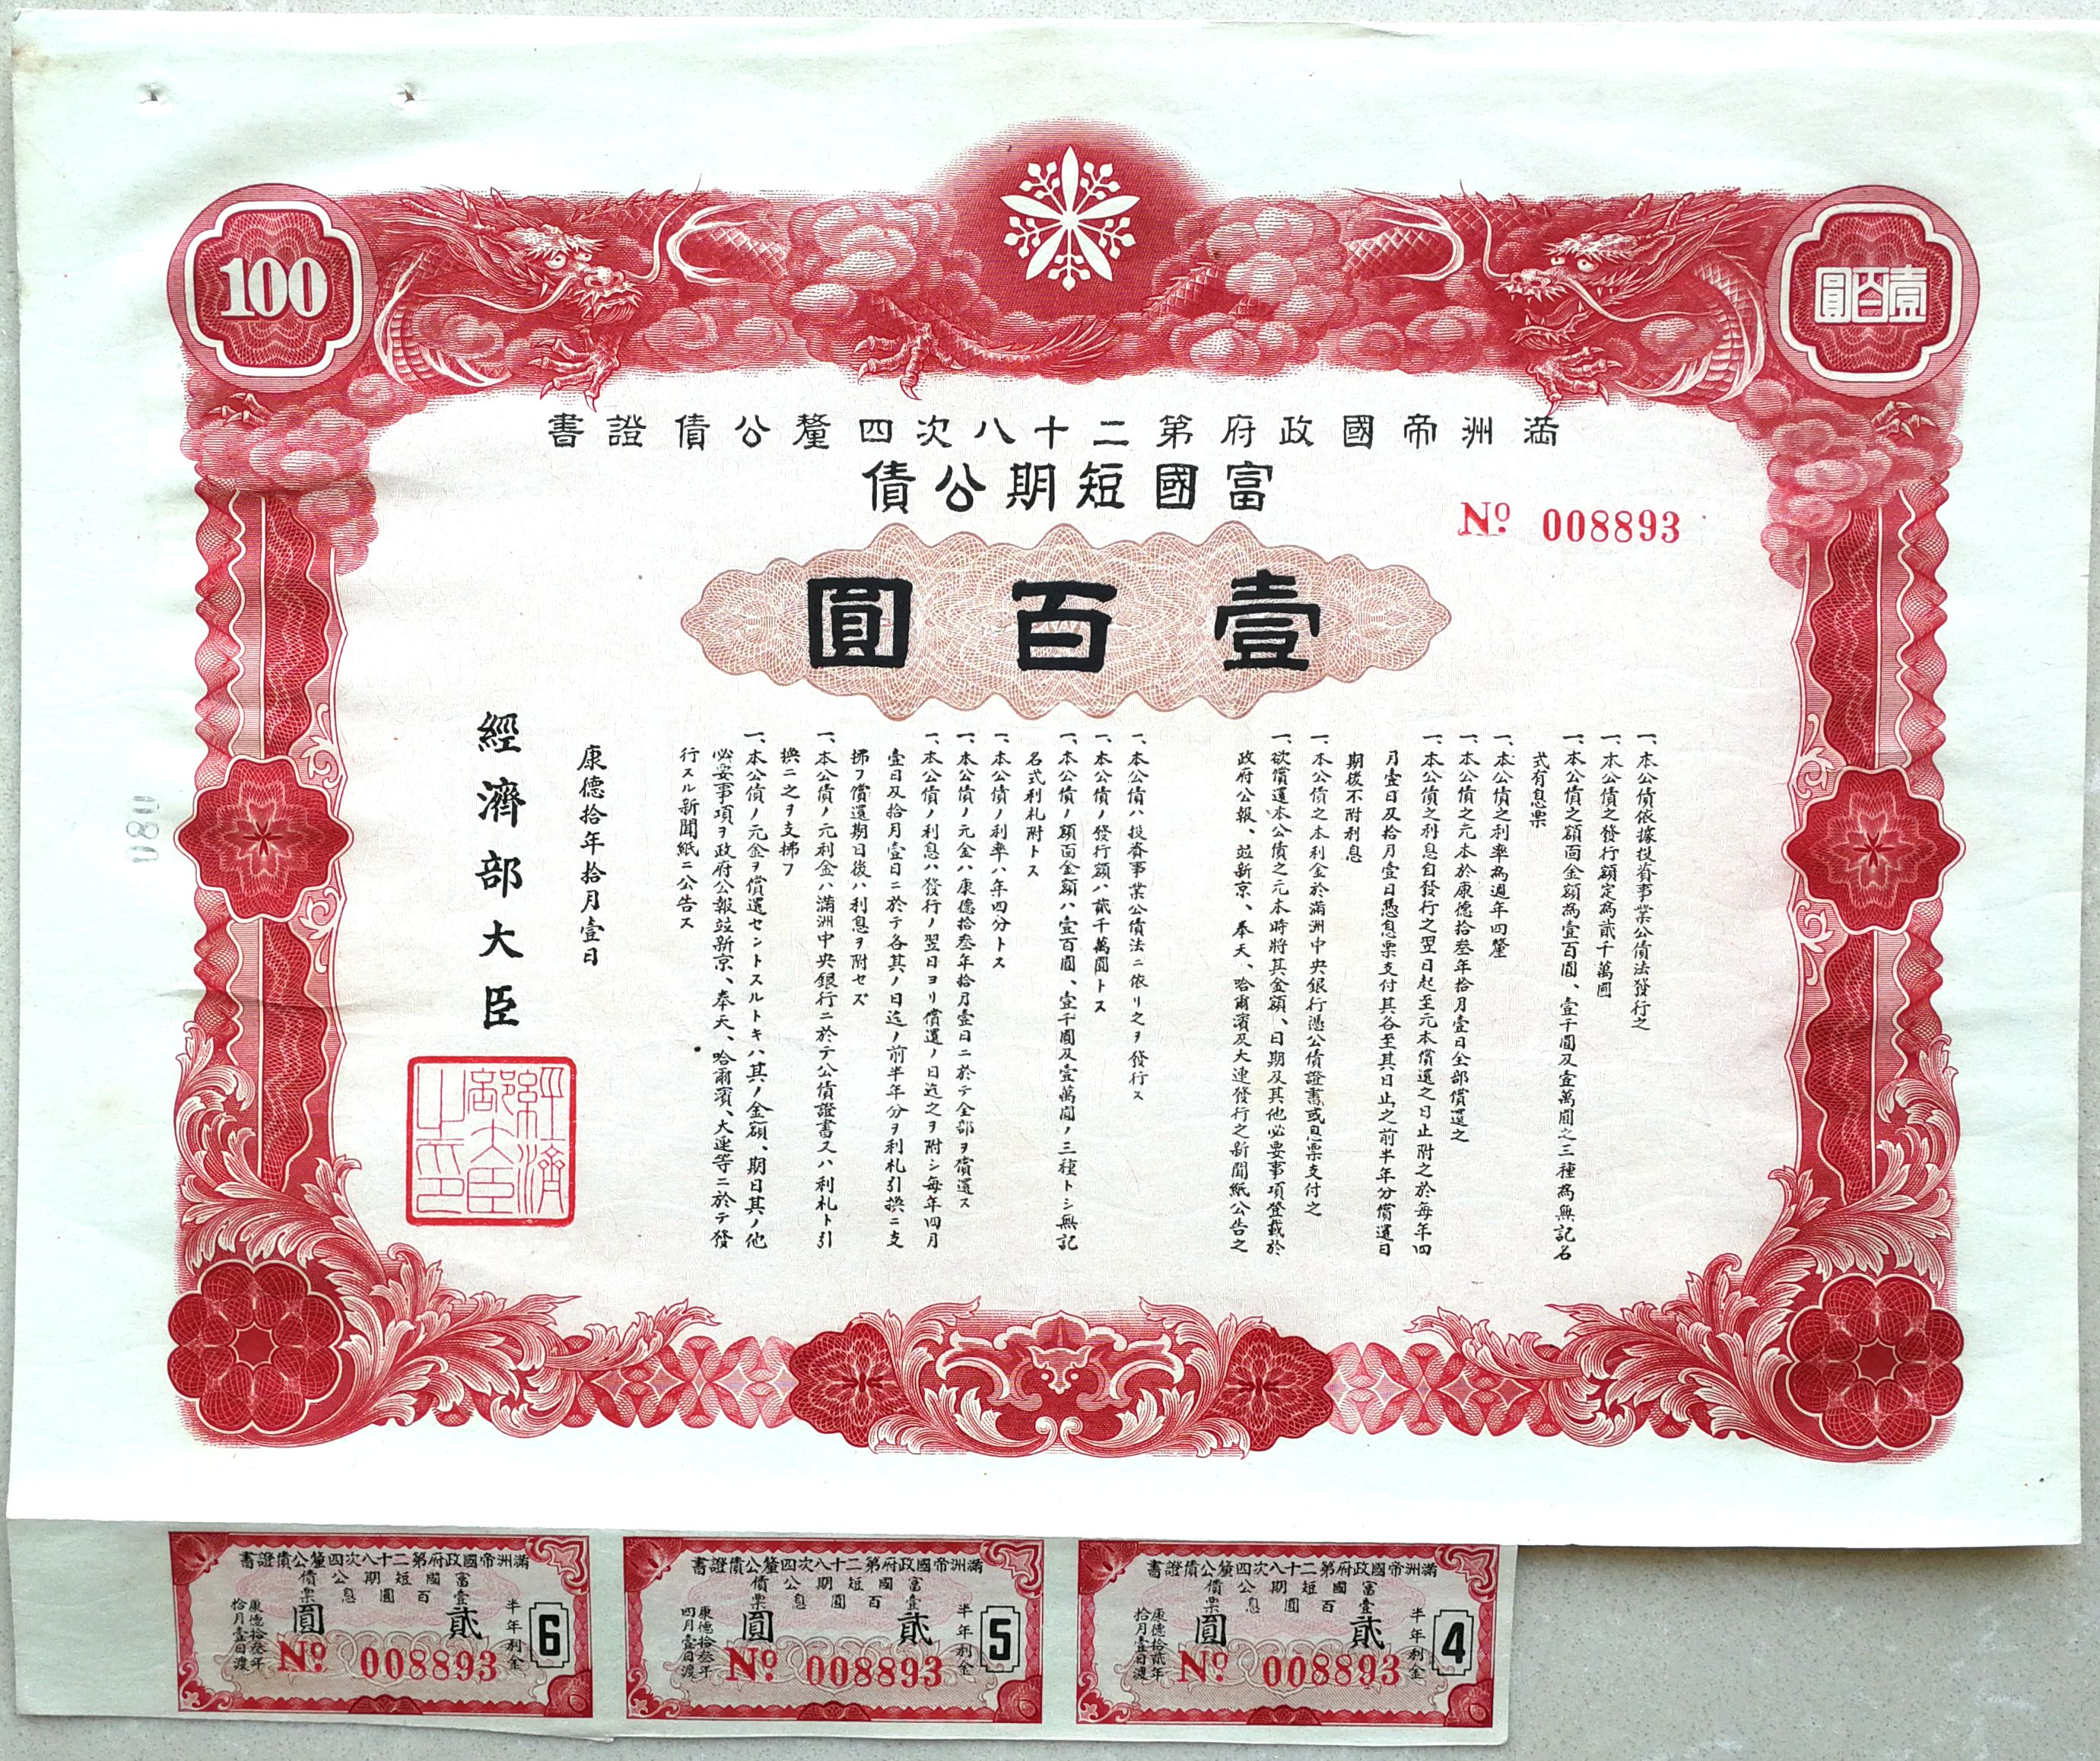 B4201, Manchukuo 4% War Treasury Bond, 100 Yen, 1943 WWII